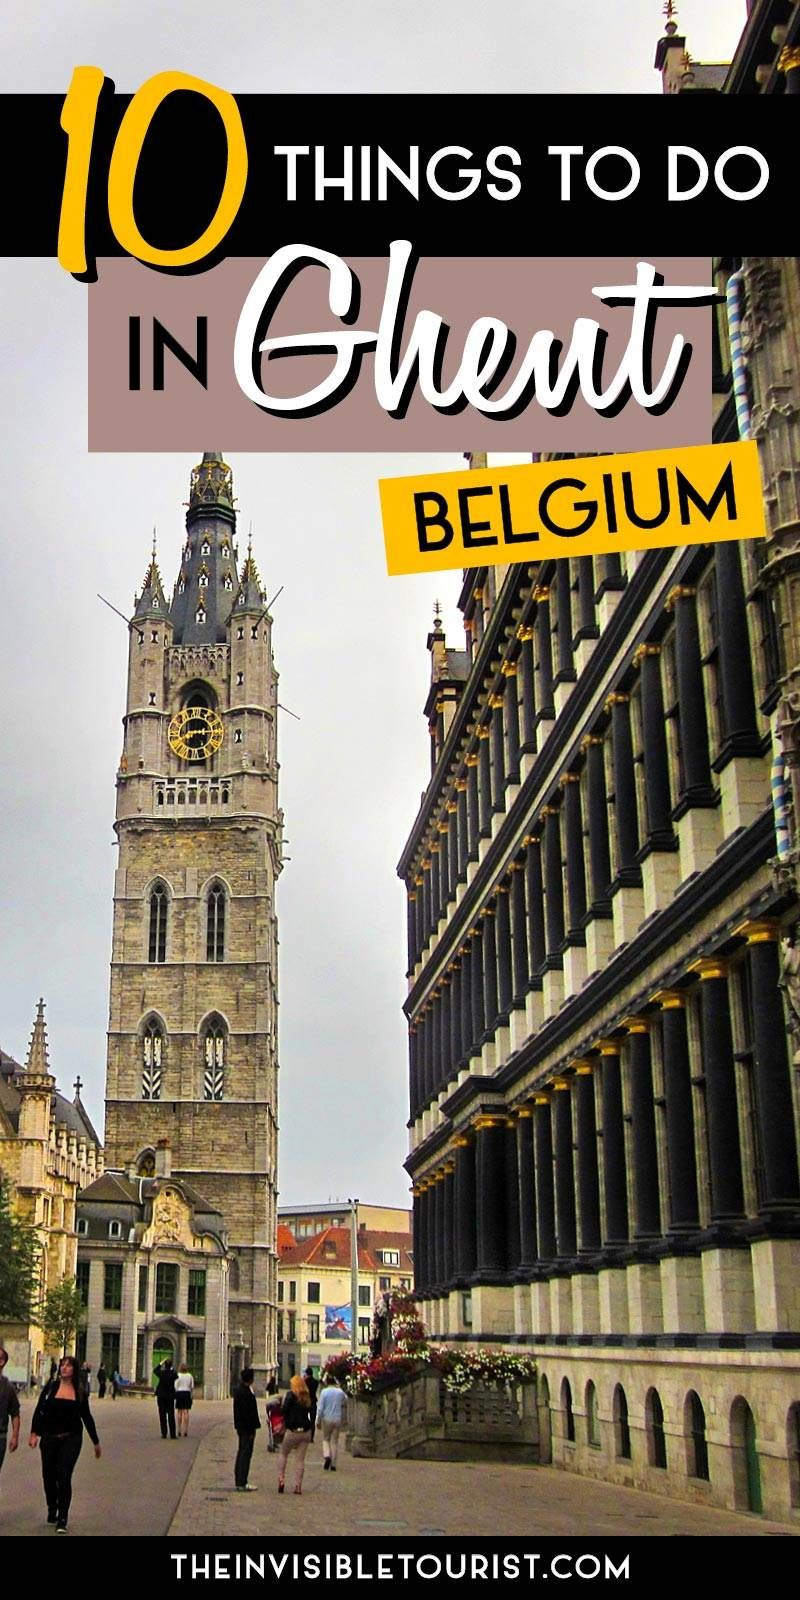 How Do I Get From Brussels Airport To Ghent